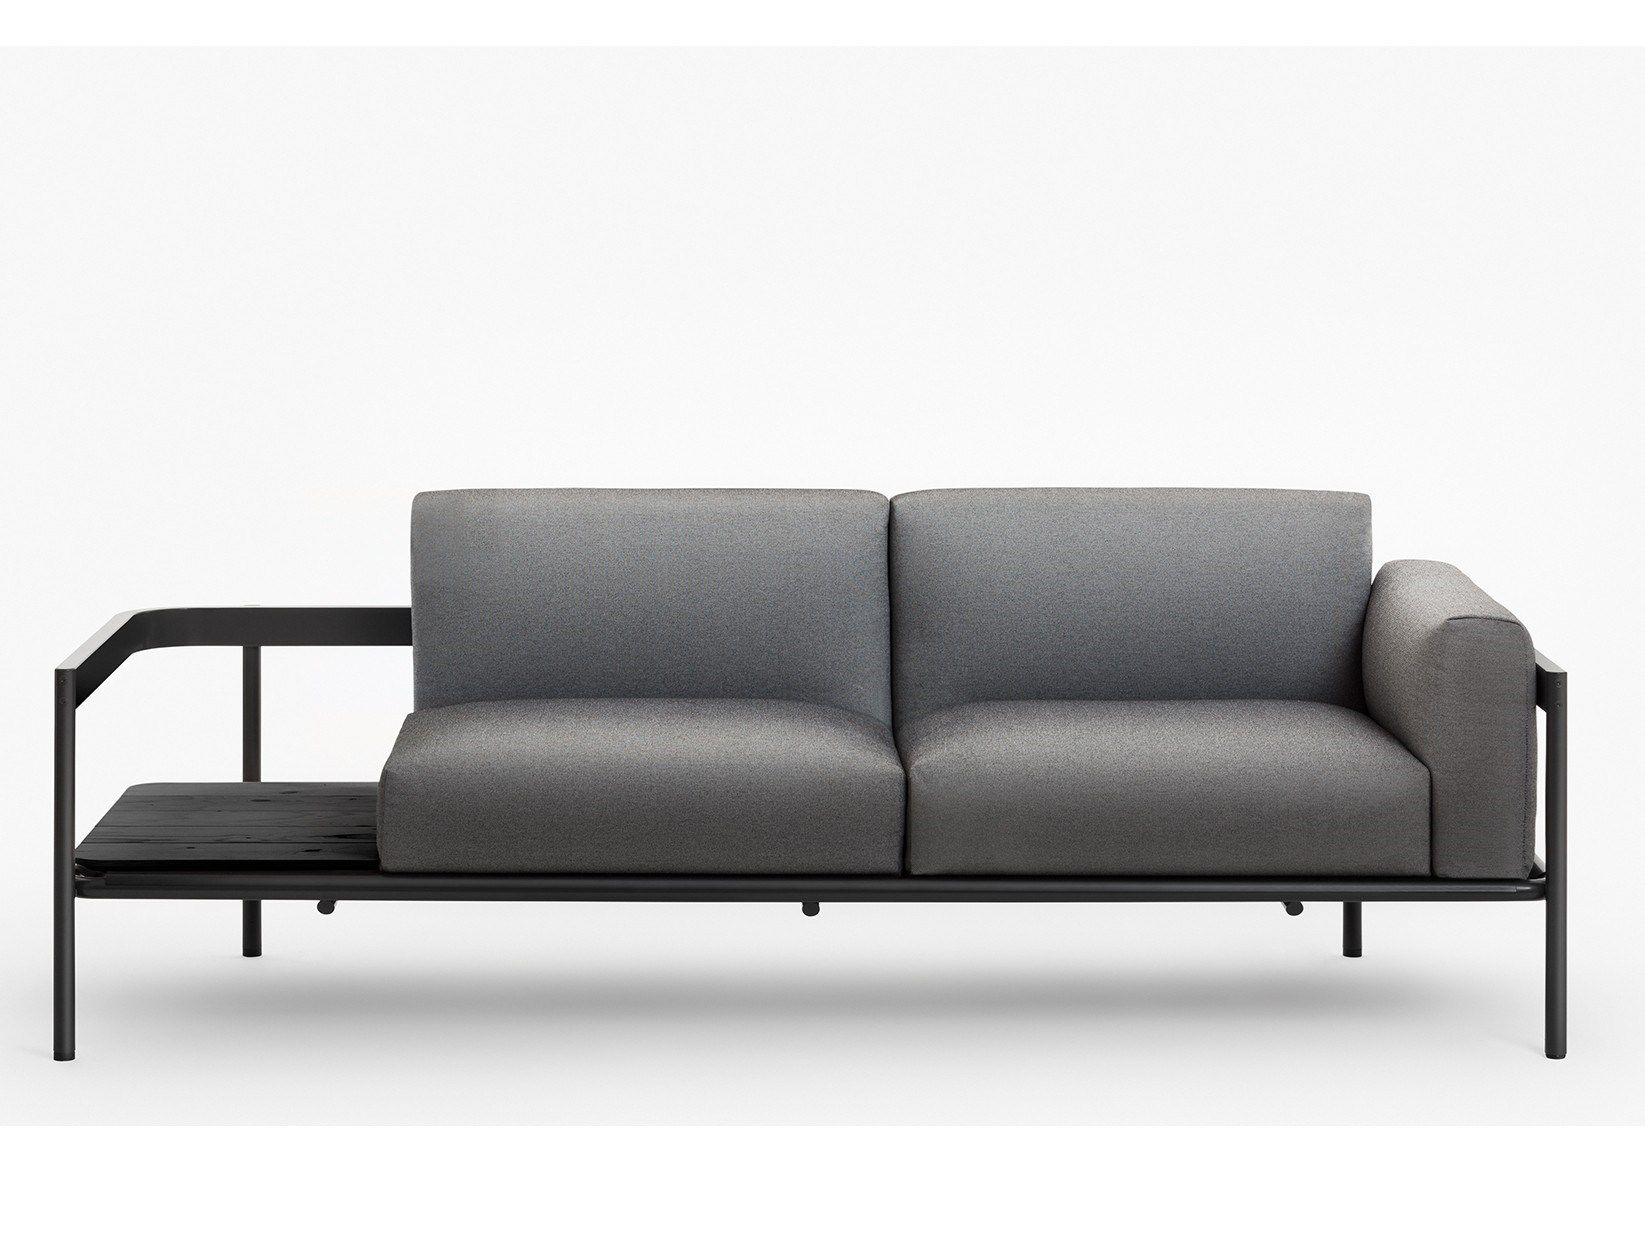 Zenit Sofa Zenit Collection By Paola Zani Design Mist O Sofa Fabric Sofa Design Sofa Furniture